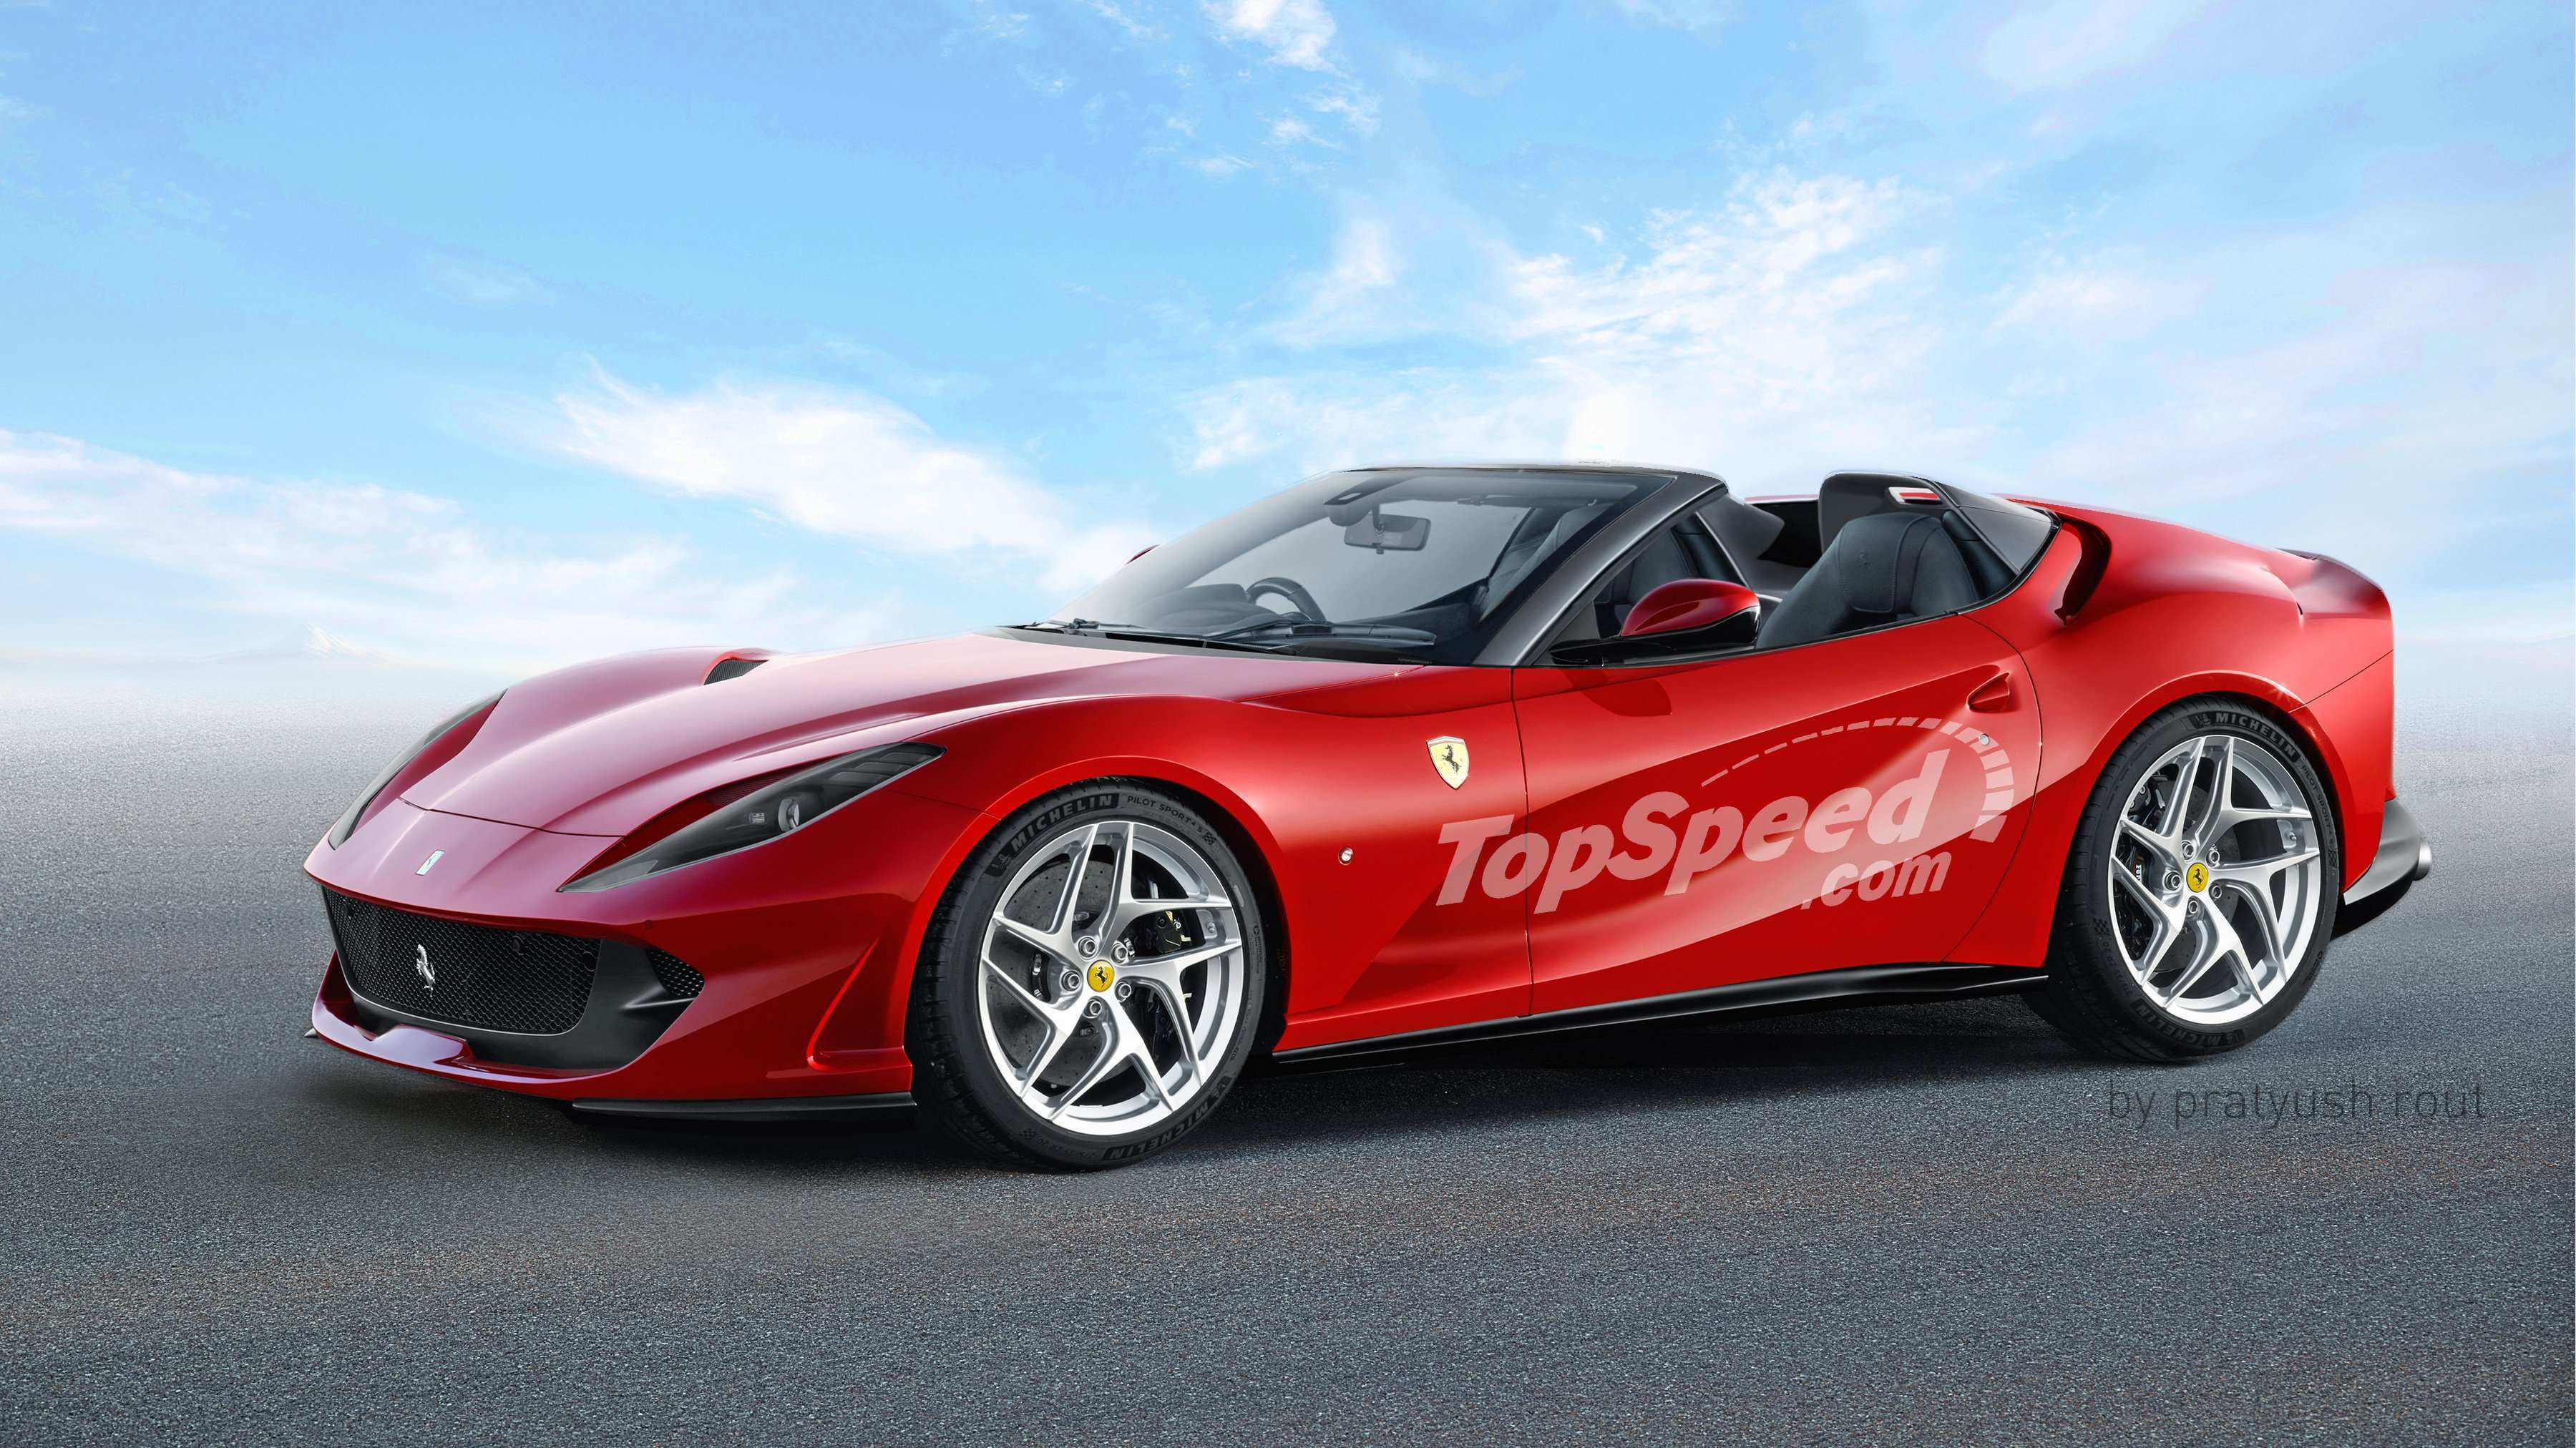 39 All New 2019 Ferrari 588 Overview with 2019 Ferrari 588